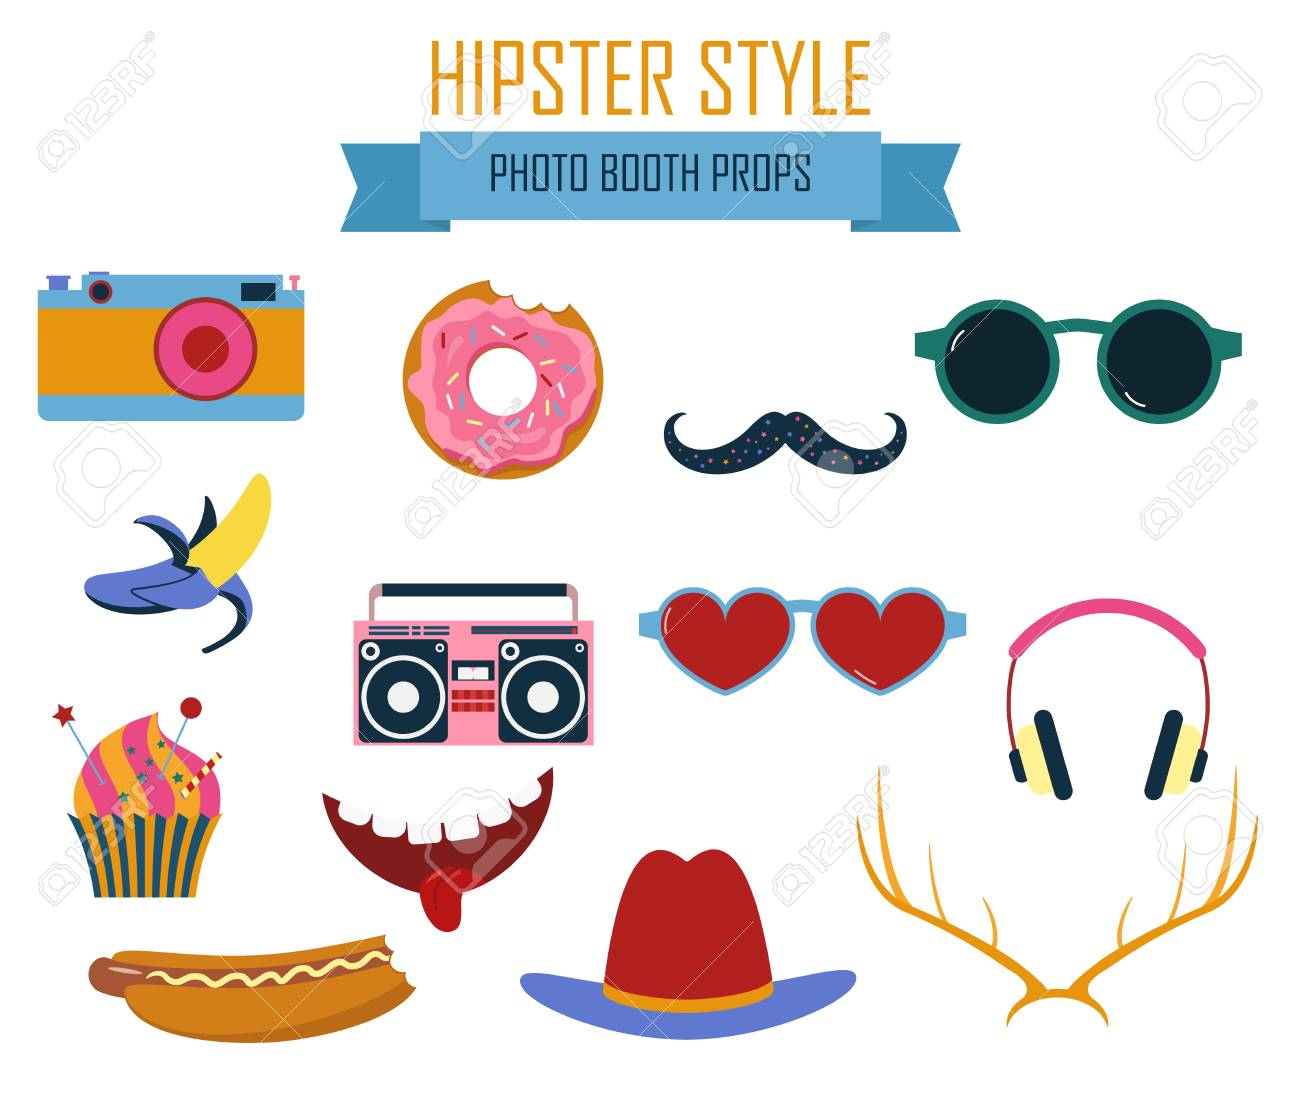 photograph about Printable Props titled Picture booth printable props selection inside of hipster structure vector..